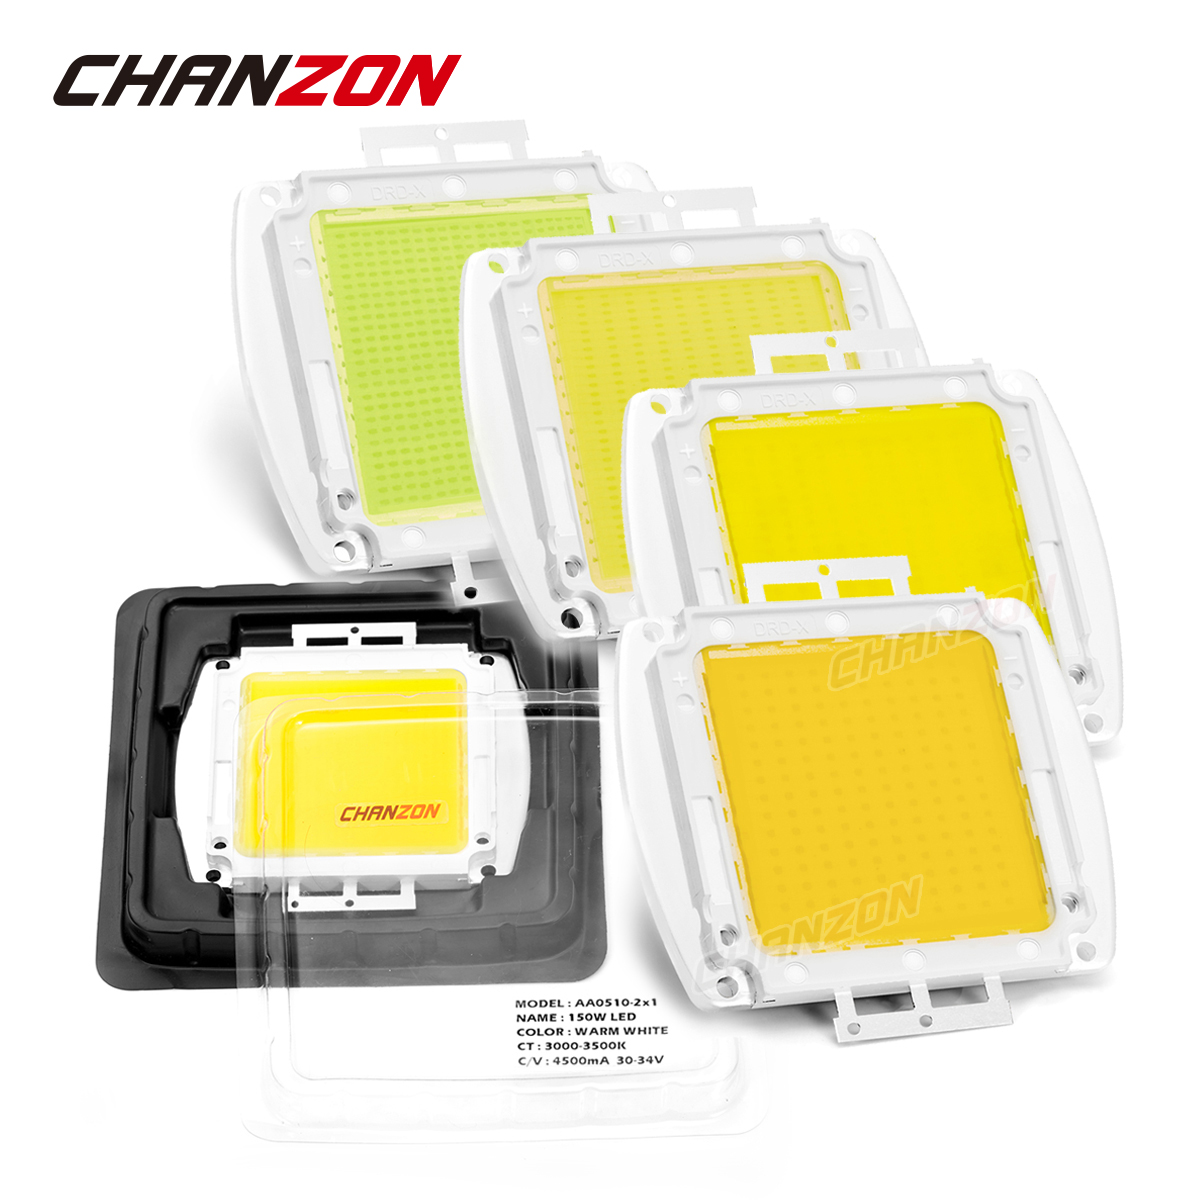 CHANZON High Power LED SMD COB Bulb Chip 150W 200W 300W 500W Natural Cool Warm White 150 200 300 500 W Watt for Outdoor Light high quality 30w cold warm white cob high power led stripe led light chip emitting diode bulb 3000lumen 800ma 36 39v 2pcs lot